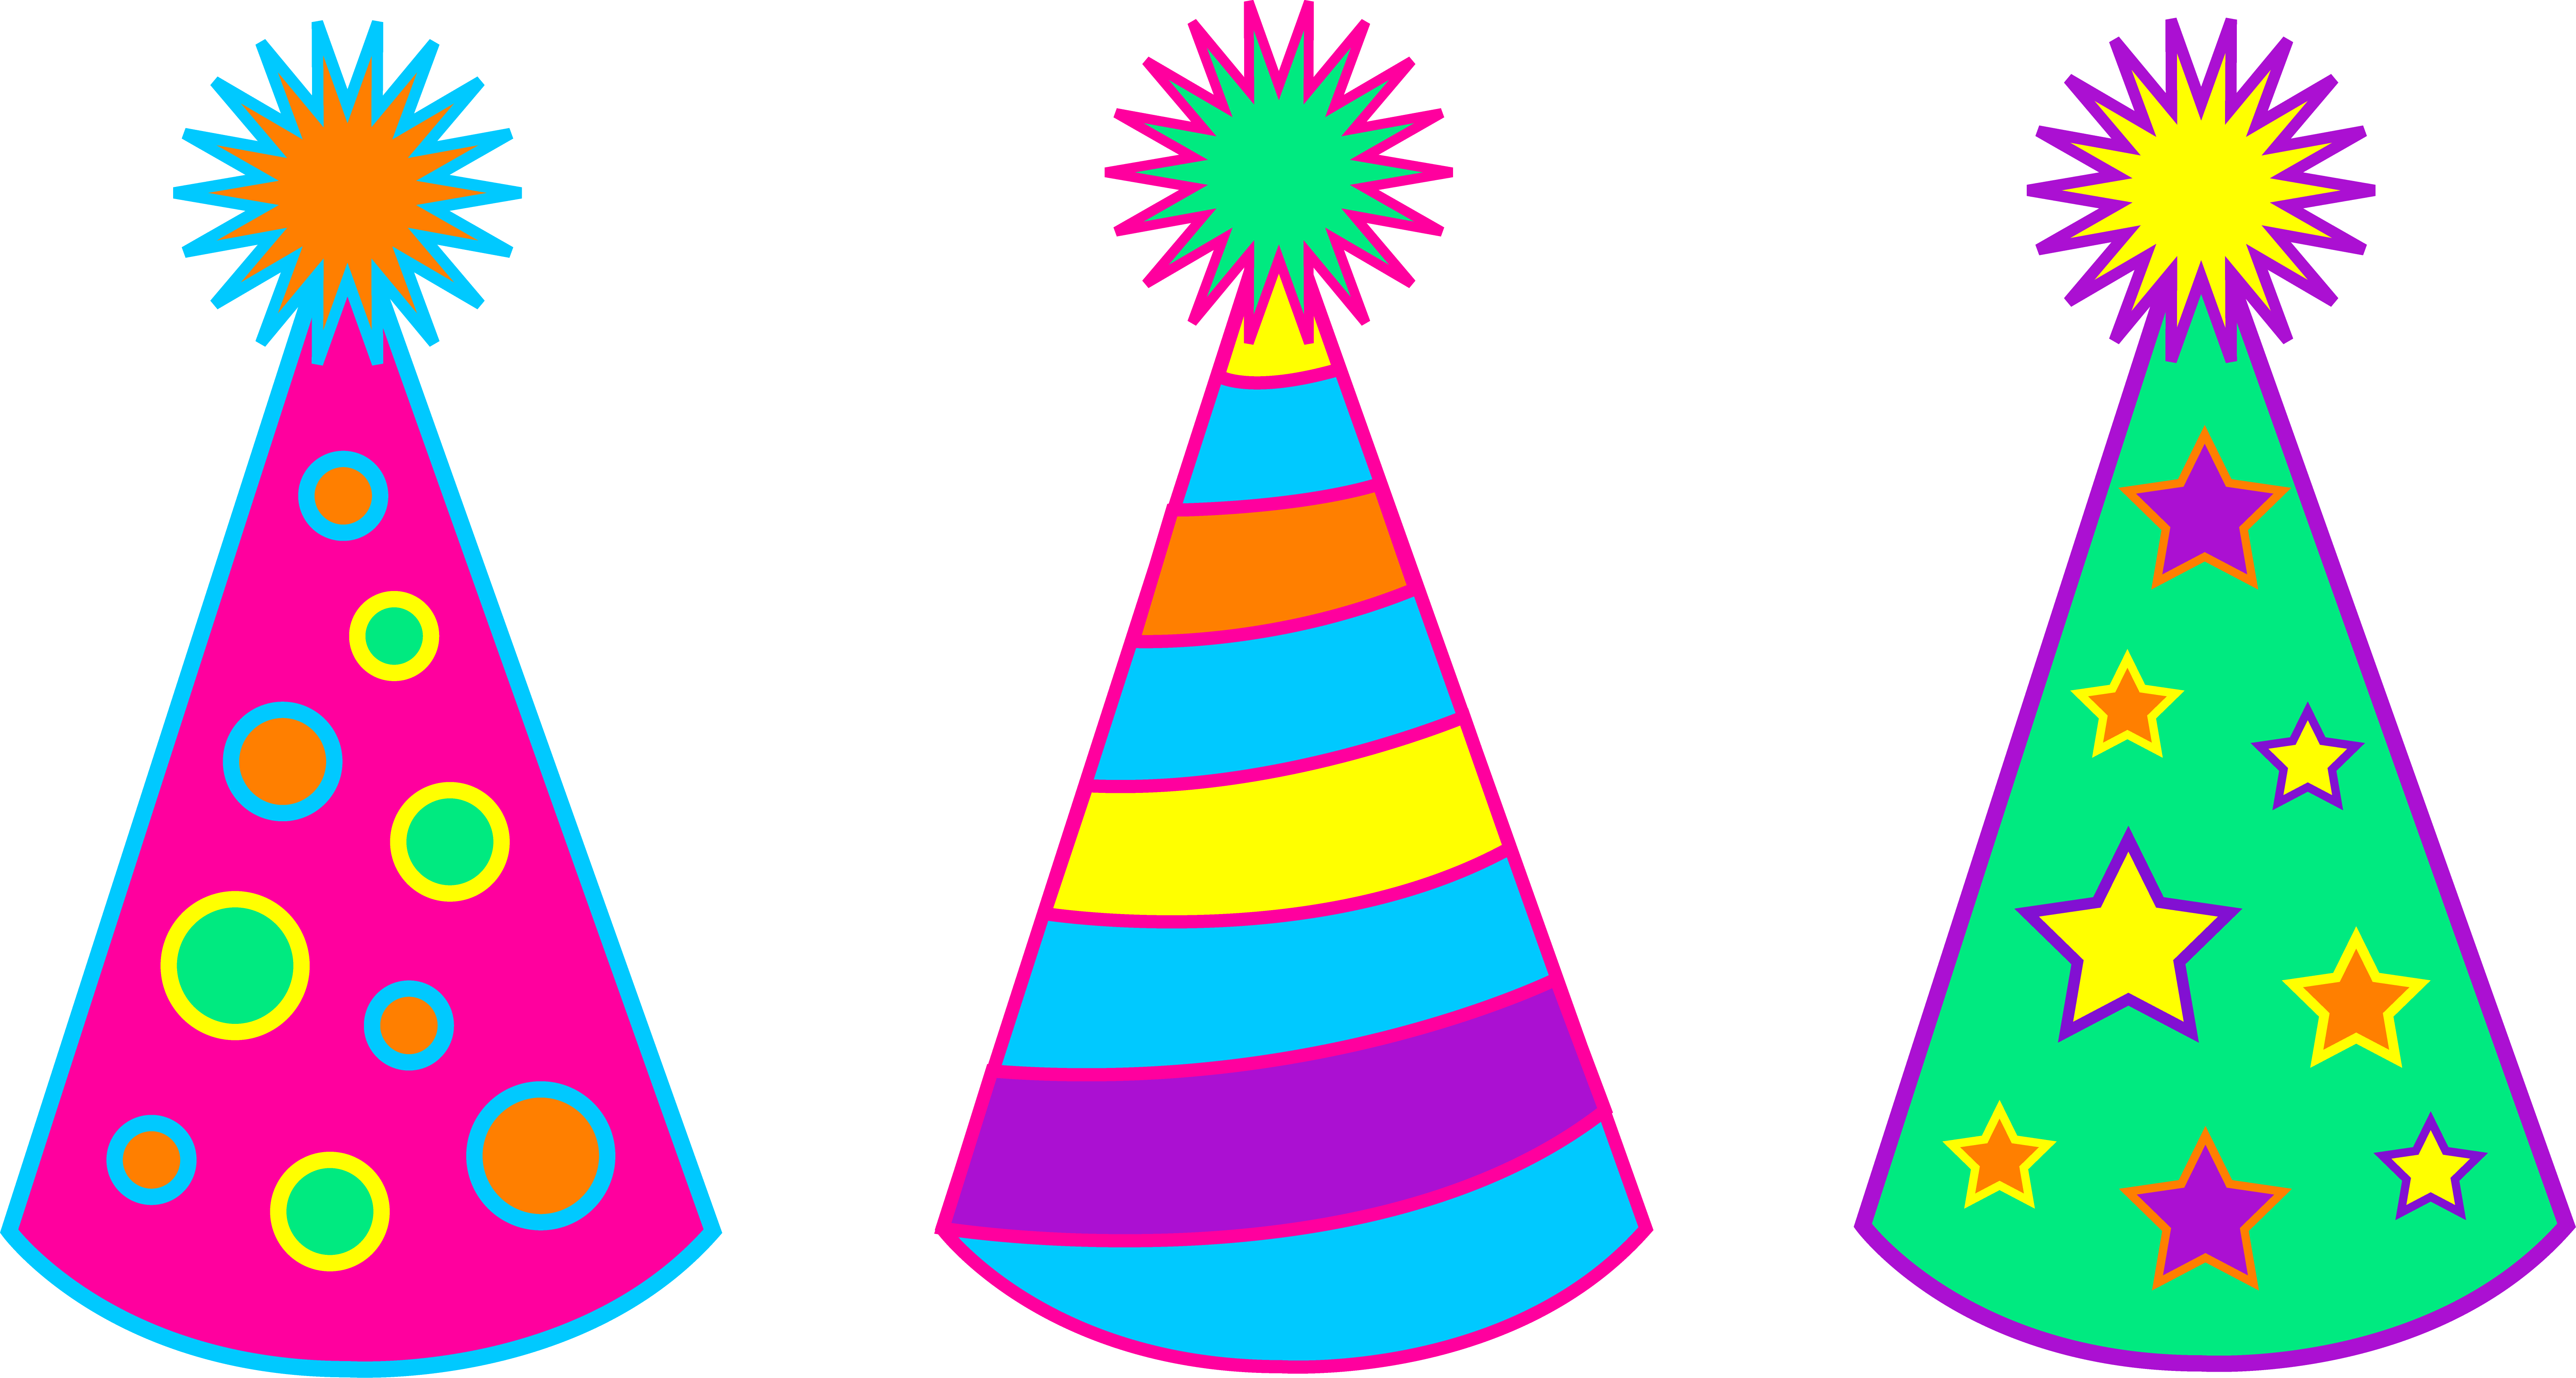 Childrens birthday clipart picture freeuse Free Children Birthday Pictures, Download Free Clip Art, Free Clip ... picture freeuse